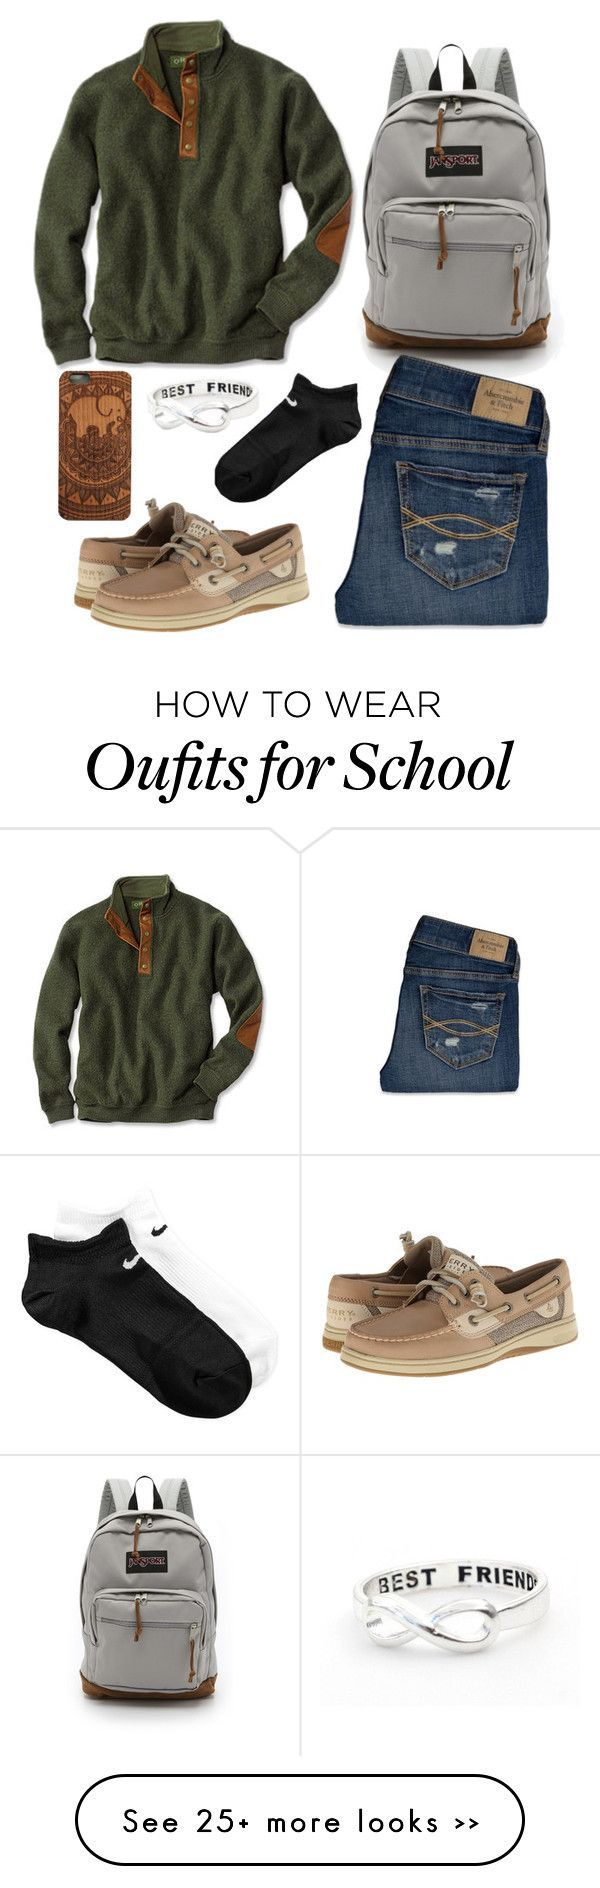 """""""school outfit"""" by countrygirl1898 on Polyvore featuring moda, JanSport, Abercrombie & Fitch, Sperry Top-Sider e NIKE"""